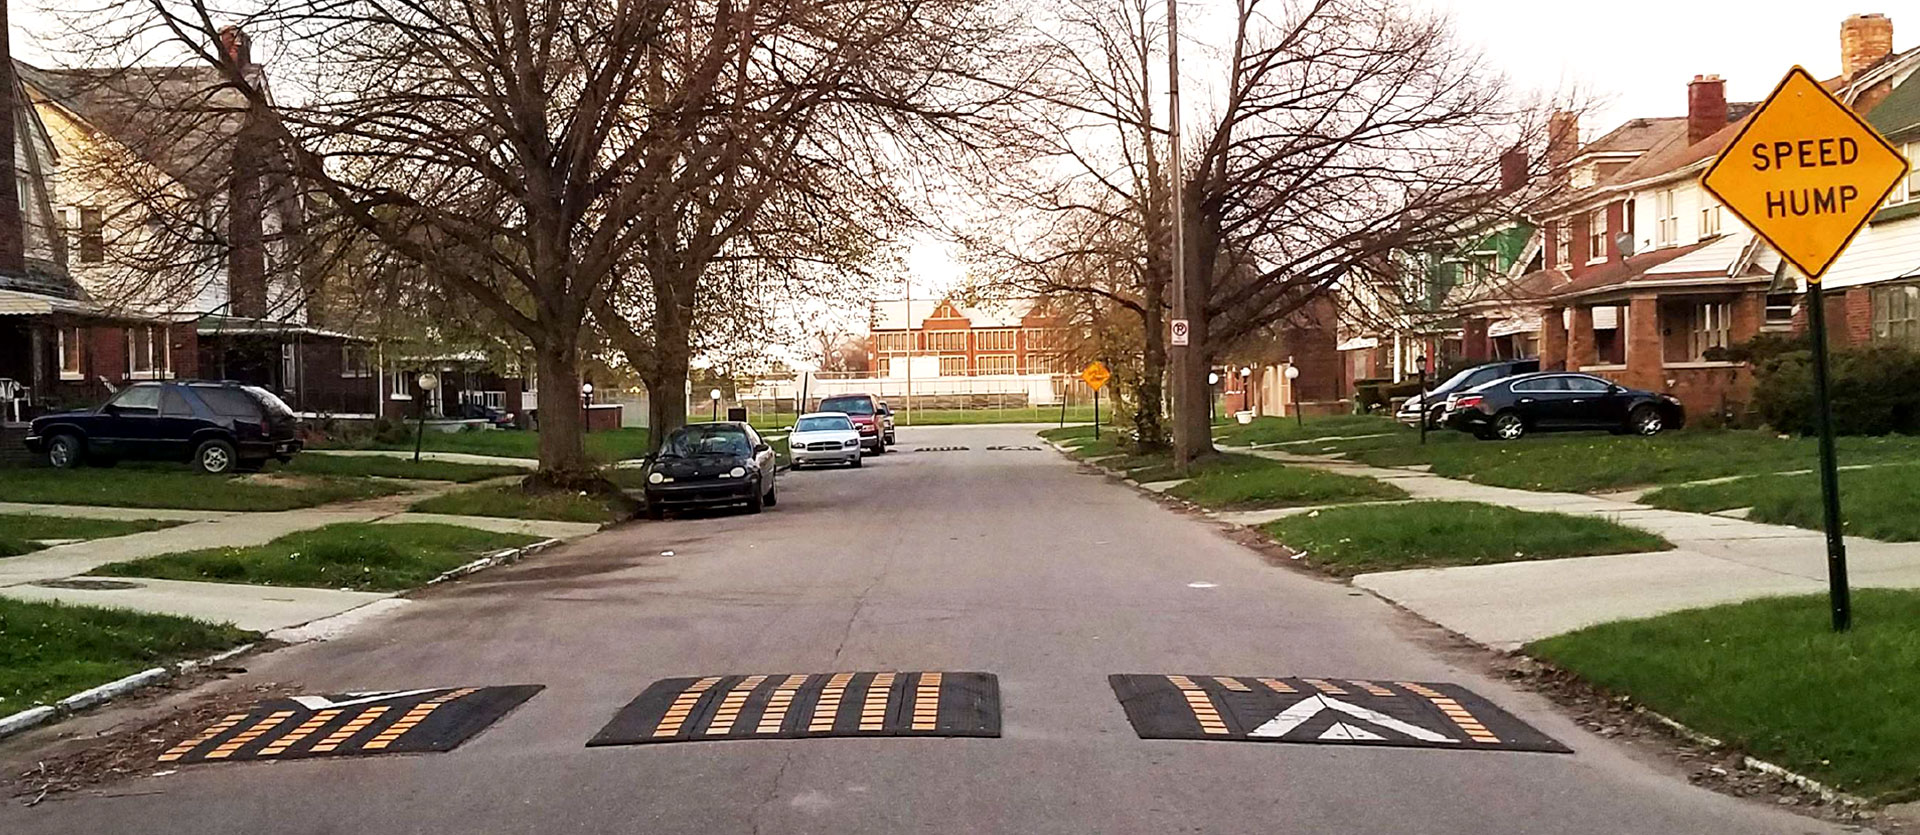 Three rubber speed cushions in a single line on a residential street.